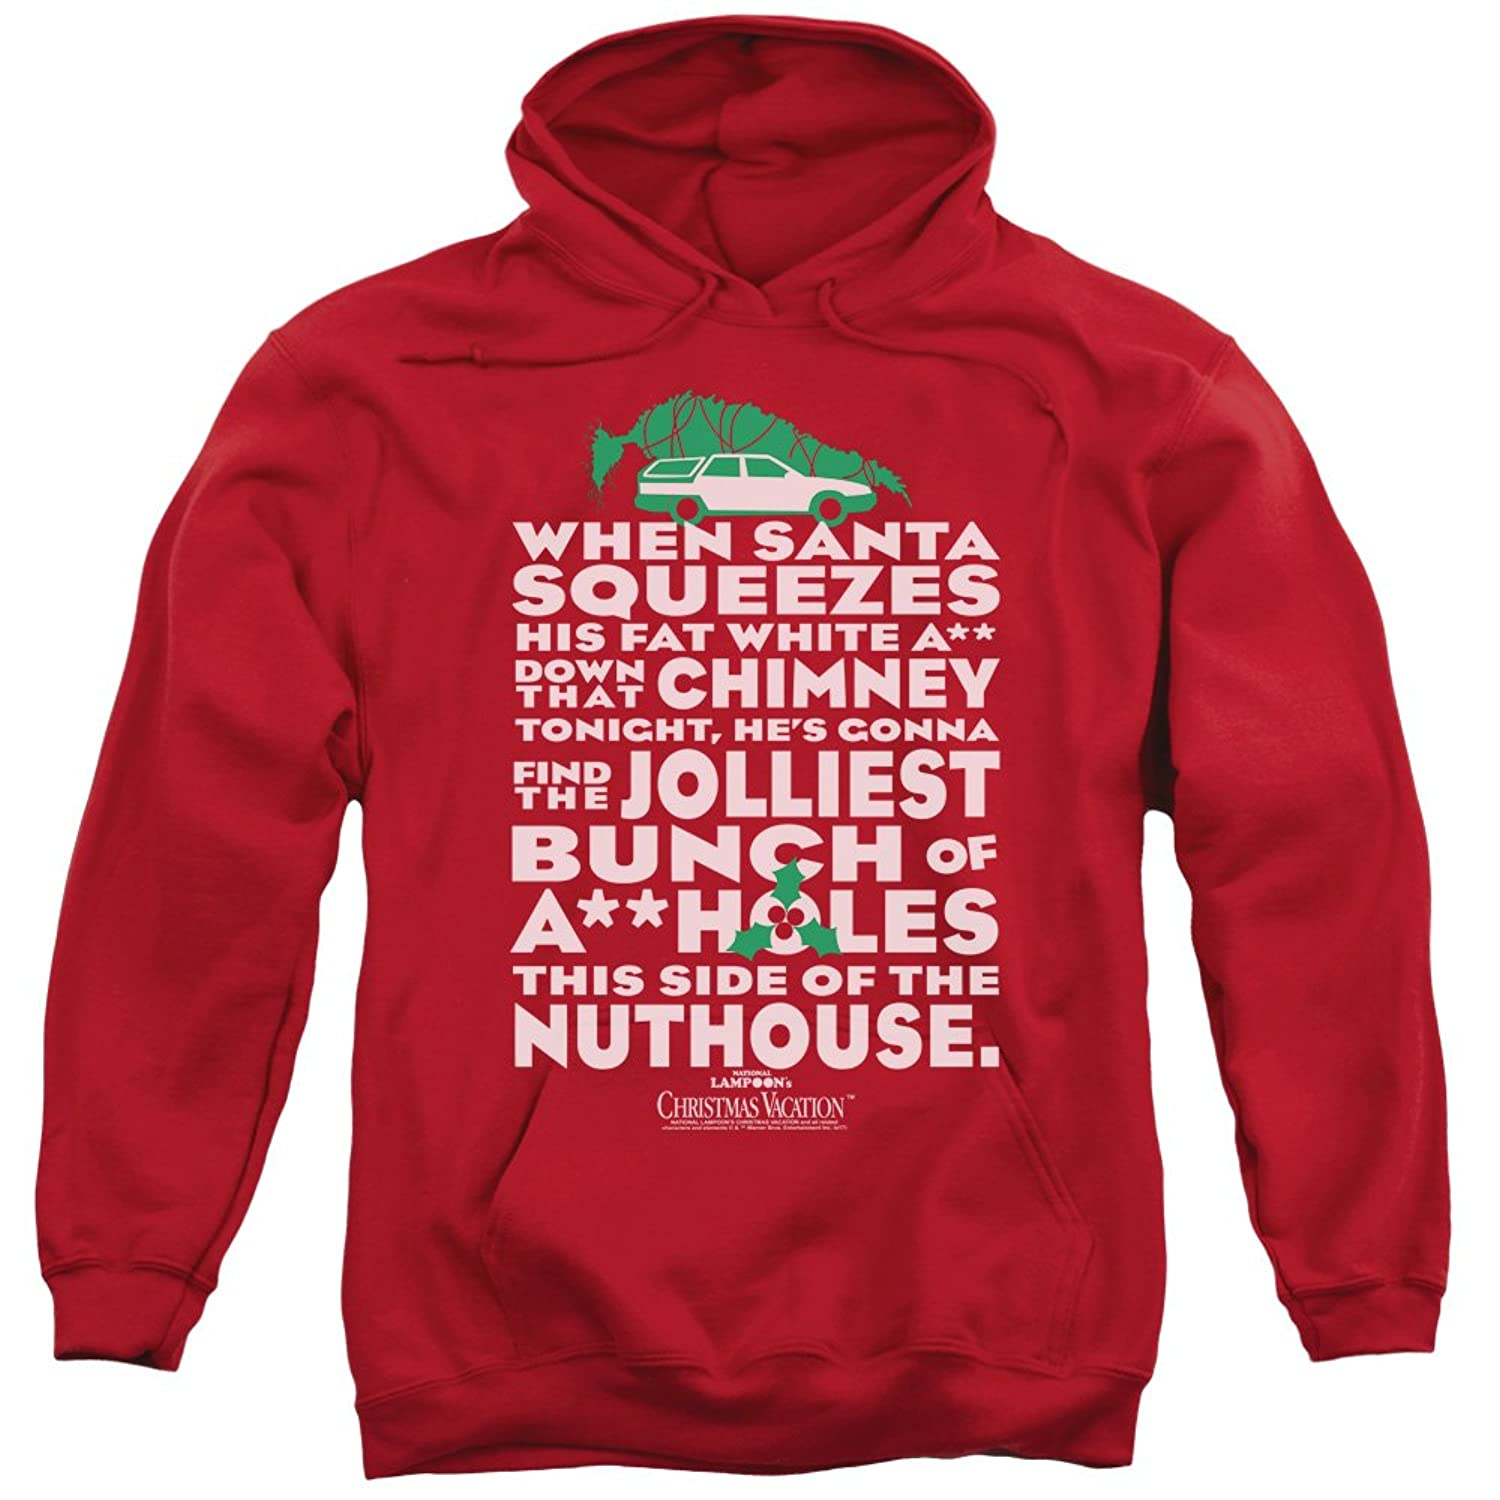 amazoncom christmas vacation jolliest bunch unisex adult pull over hoodie for men and women clothing